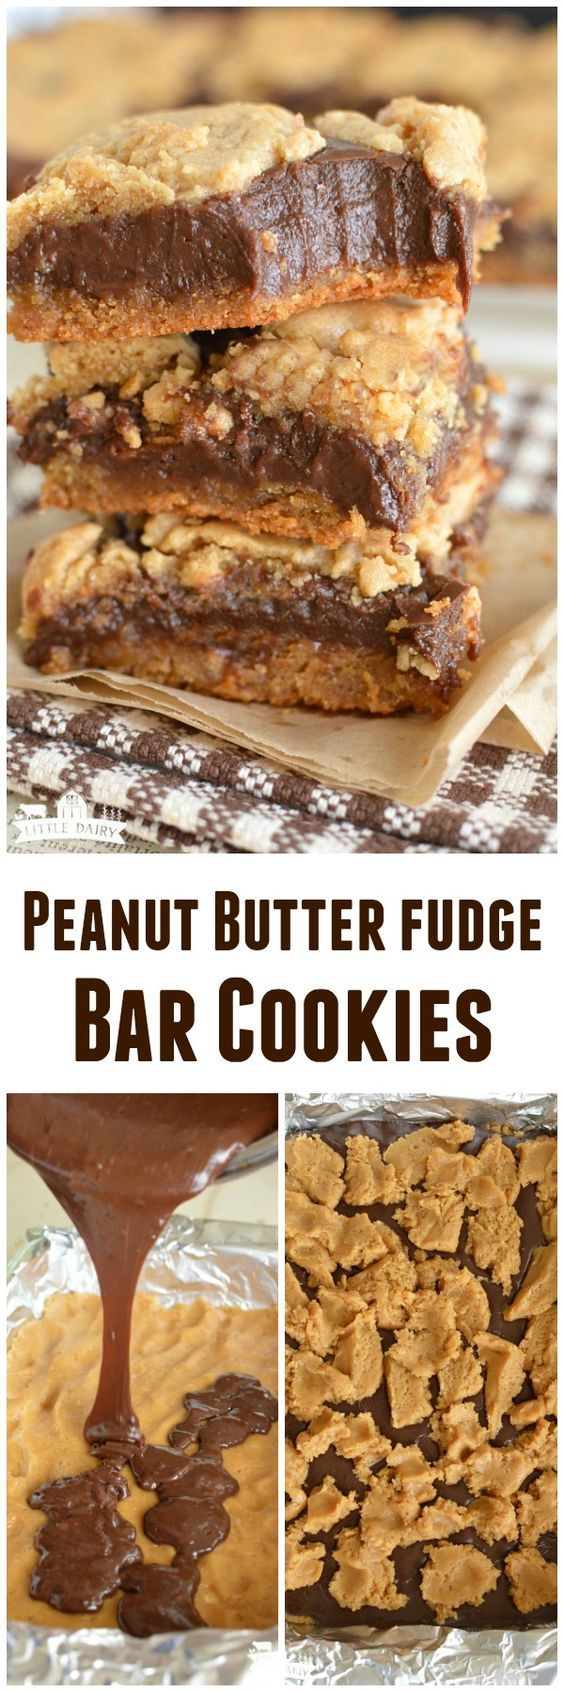 Peanut Butter Fudge Cookie Bars only take a handful of ingredients and about 5 minutes to prepare thanks to a handy shortcut! Everyone always asks for this easy recipe!